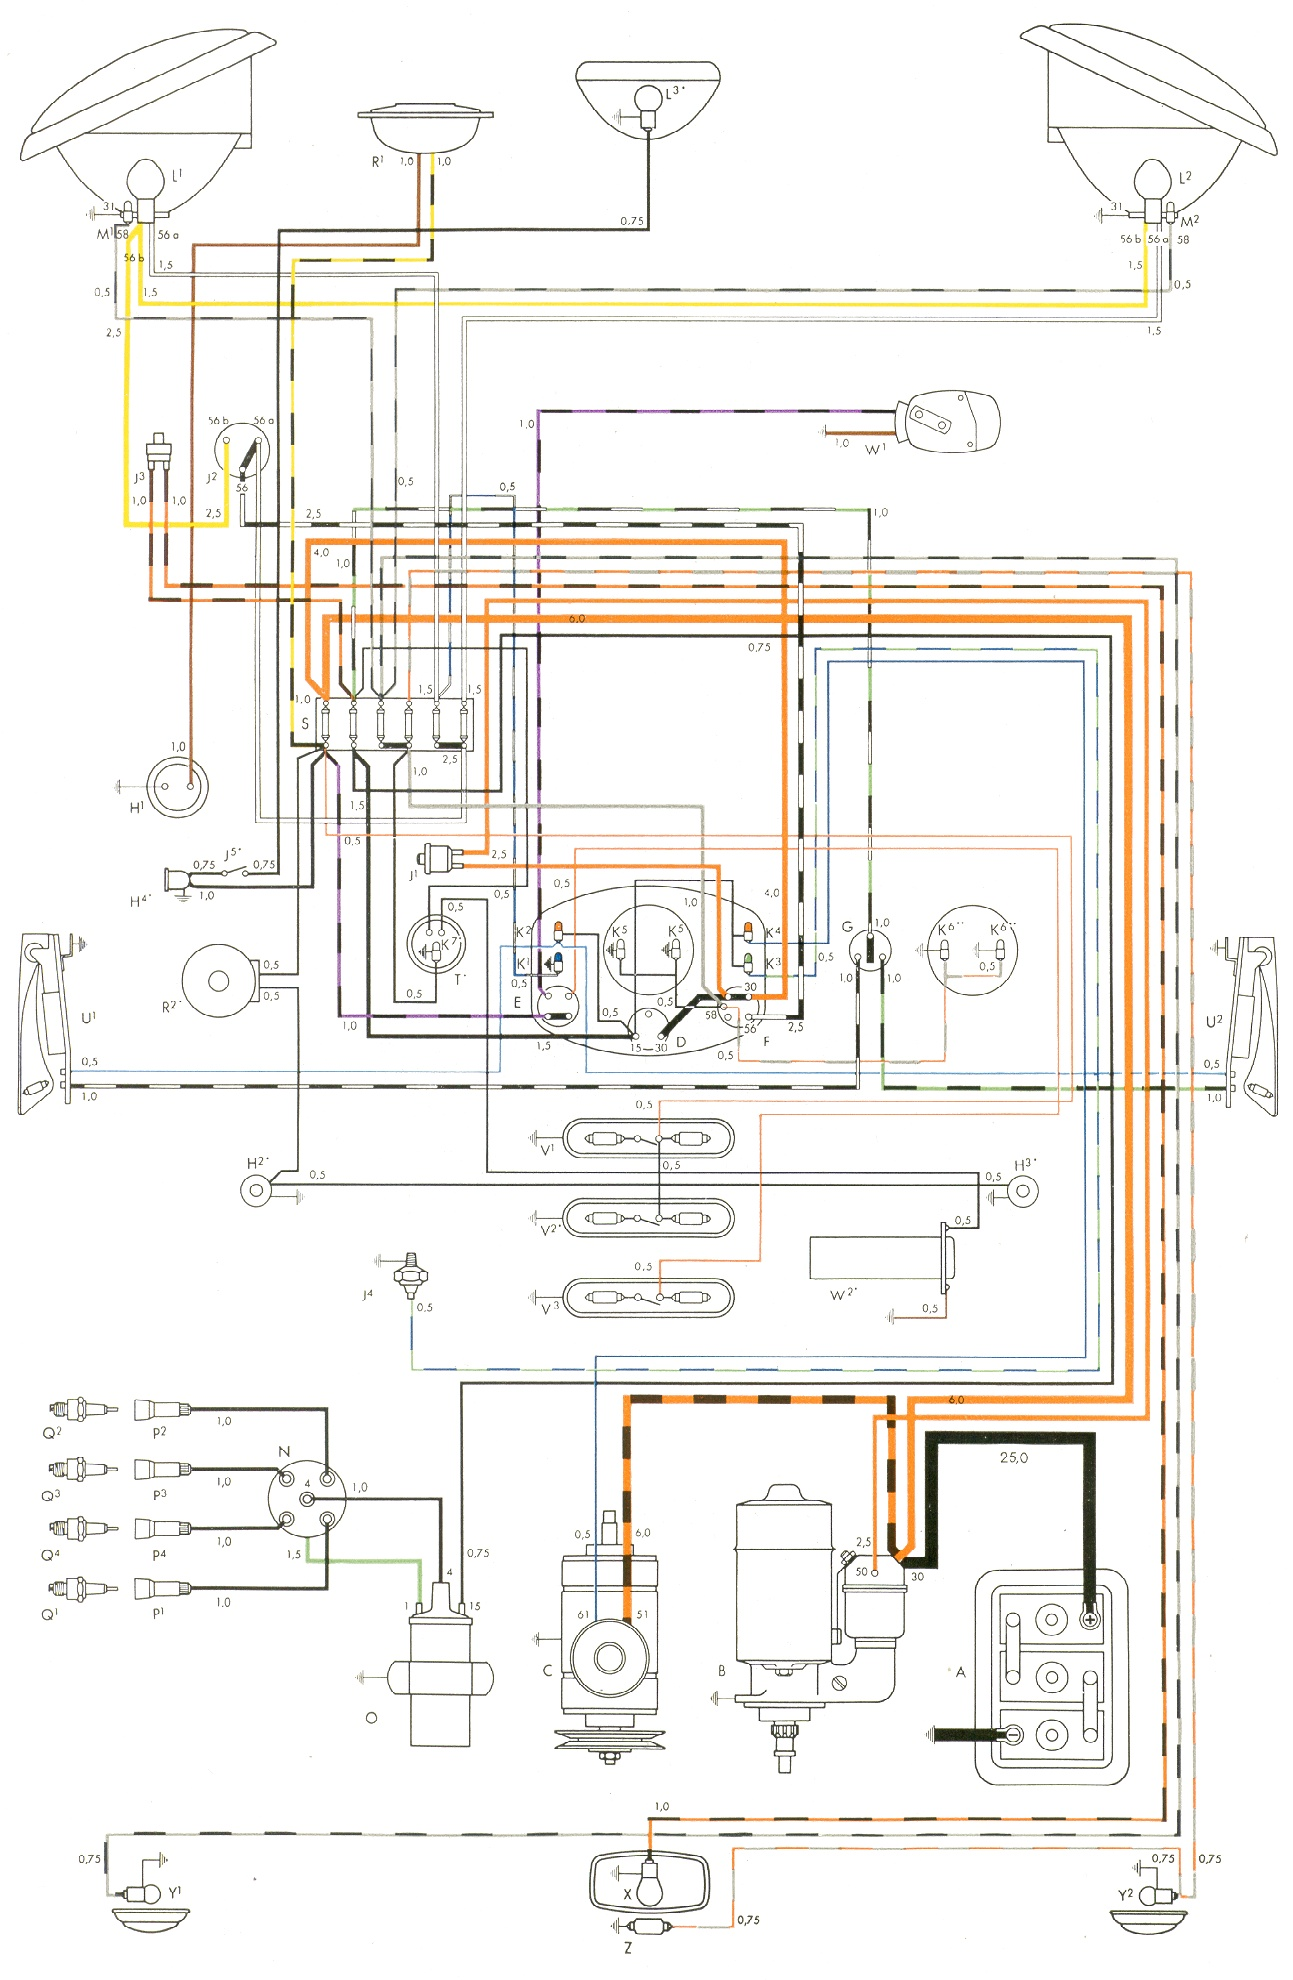 bus 54 vw wiring diagrams vw bug wiring diagram at eliteediting.co